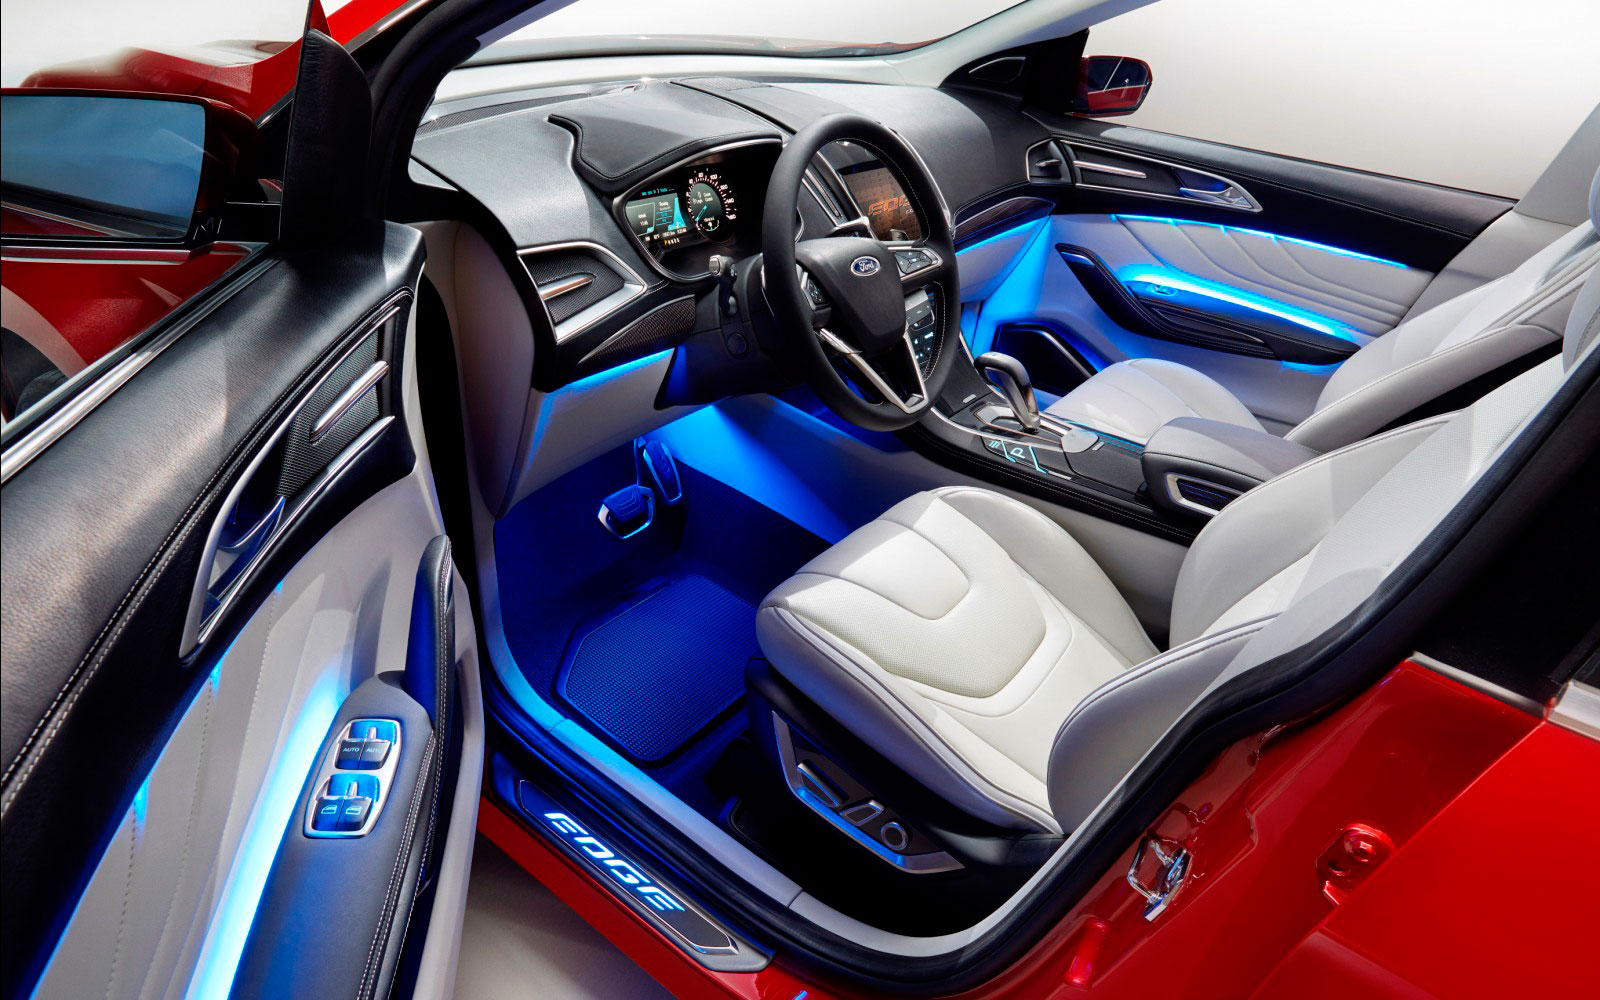 marvelous-design-of-the-white-seats-ideas-with-blue-lights-ideas-with-black-dash-ideas-as-the-ford-edge-2015-interior-ideas